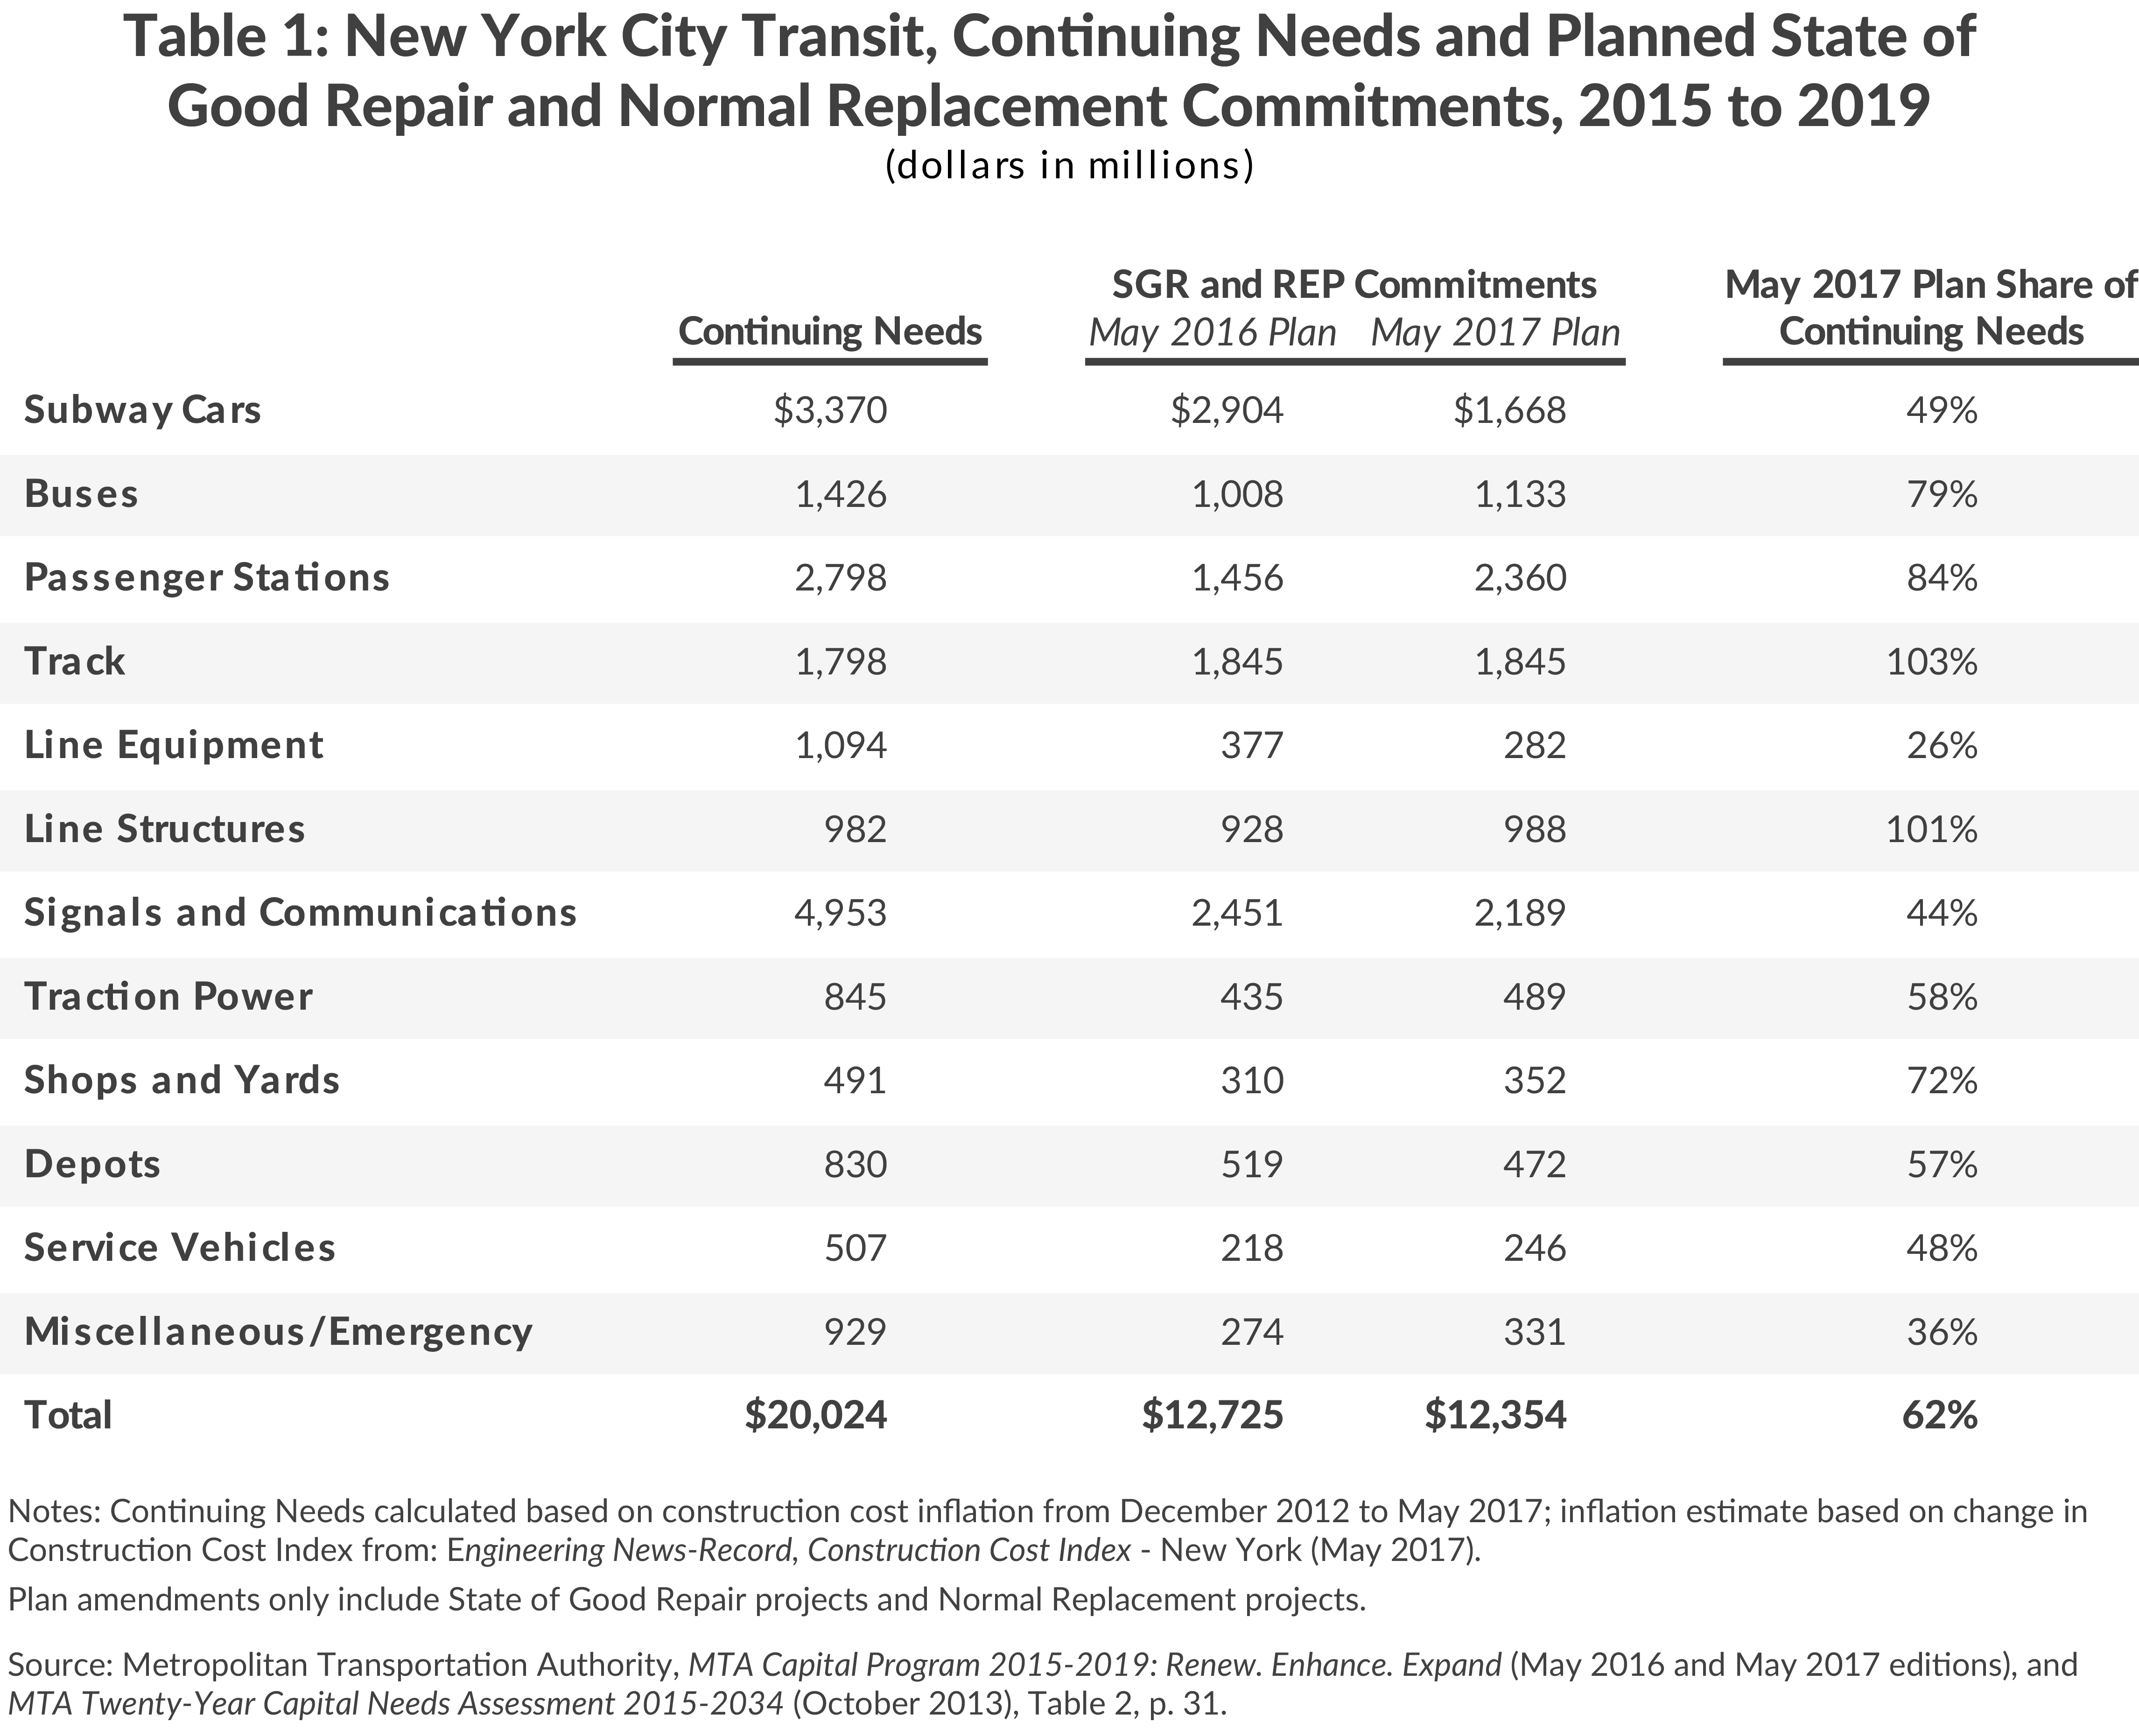 Table 1: New York City Transit, Continuing Needs and Planned State of Good Repair (SGR) and Normal Replacement (REP) Commitments, 2015 to 2019